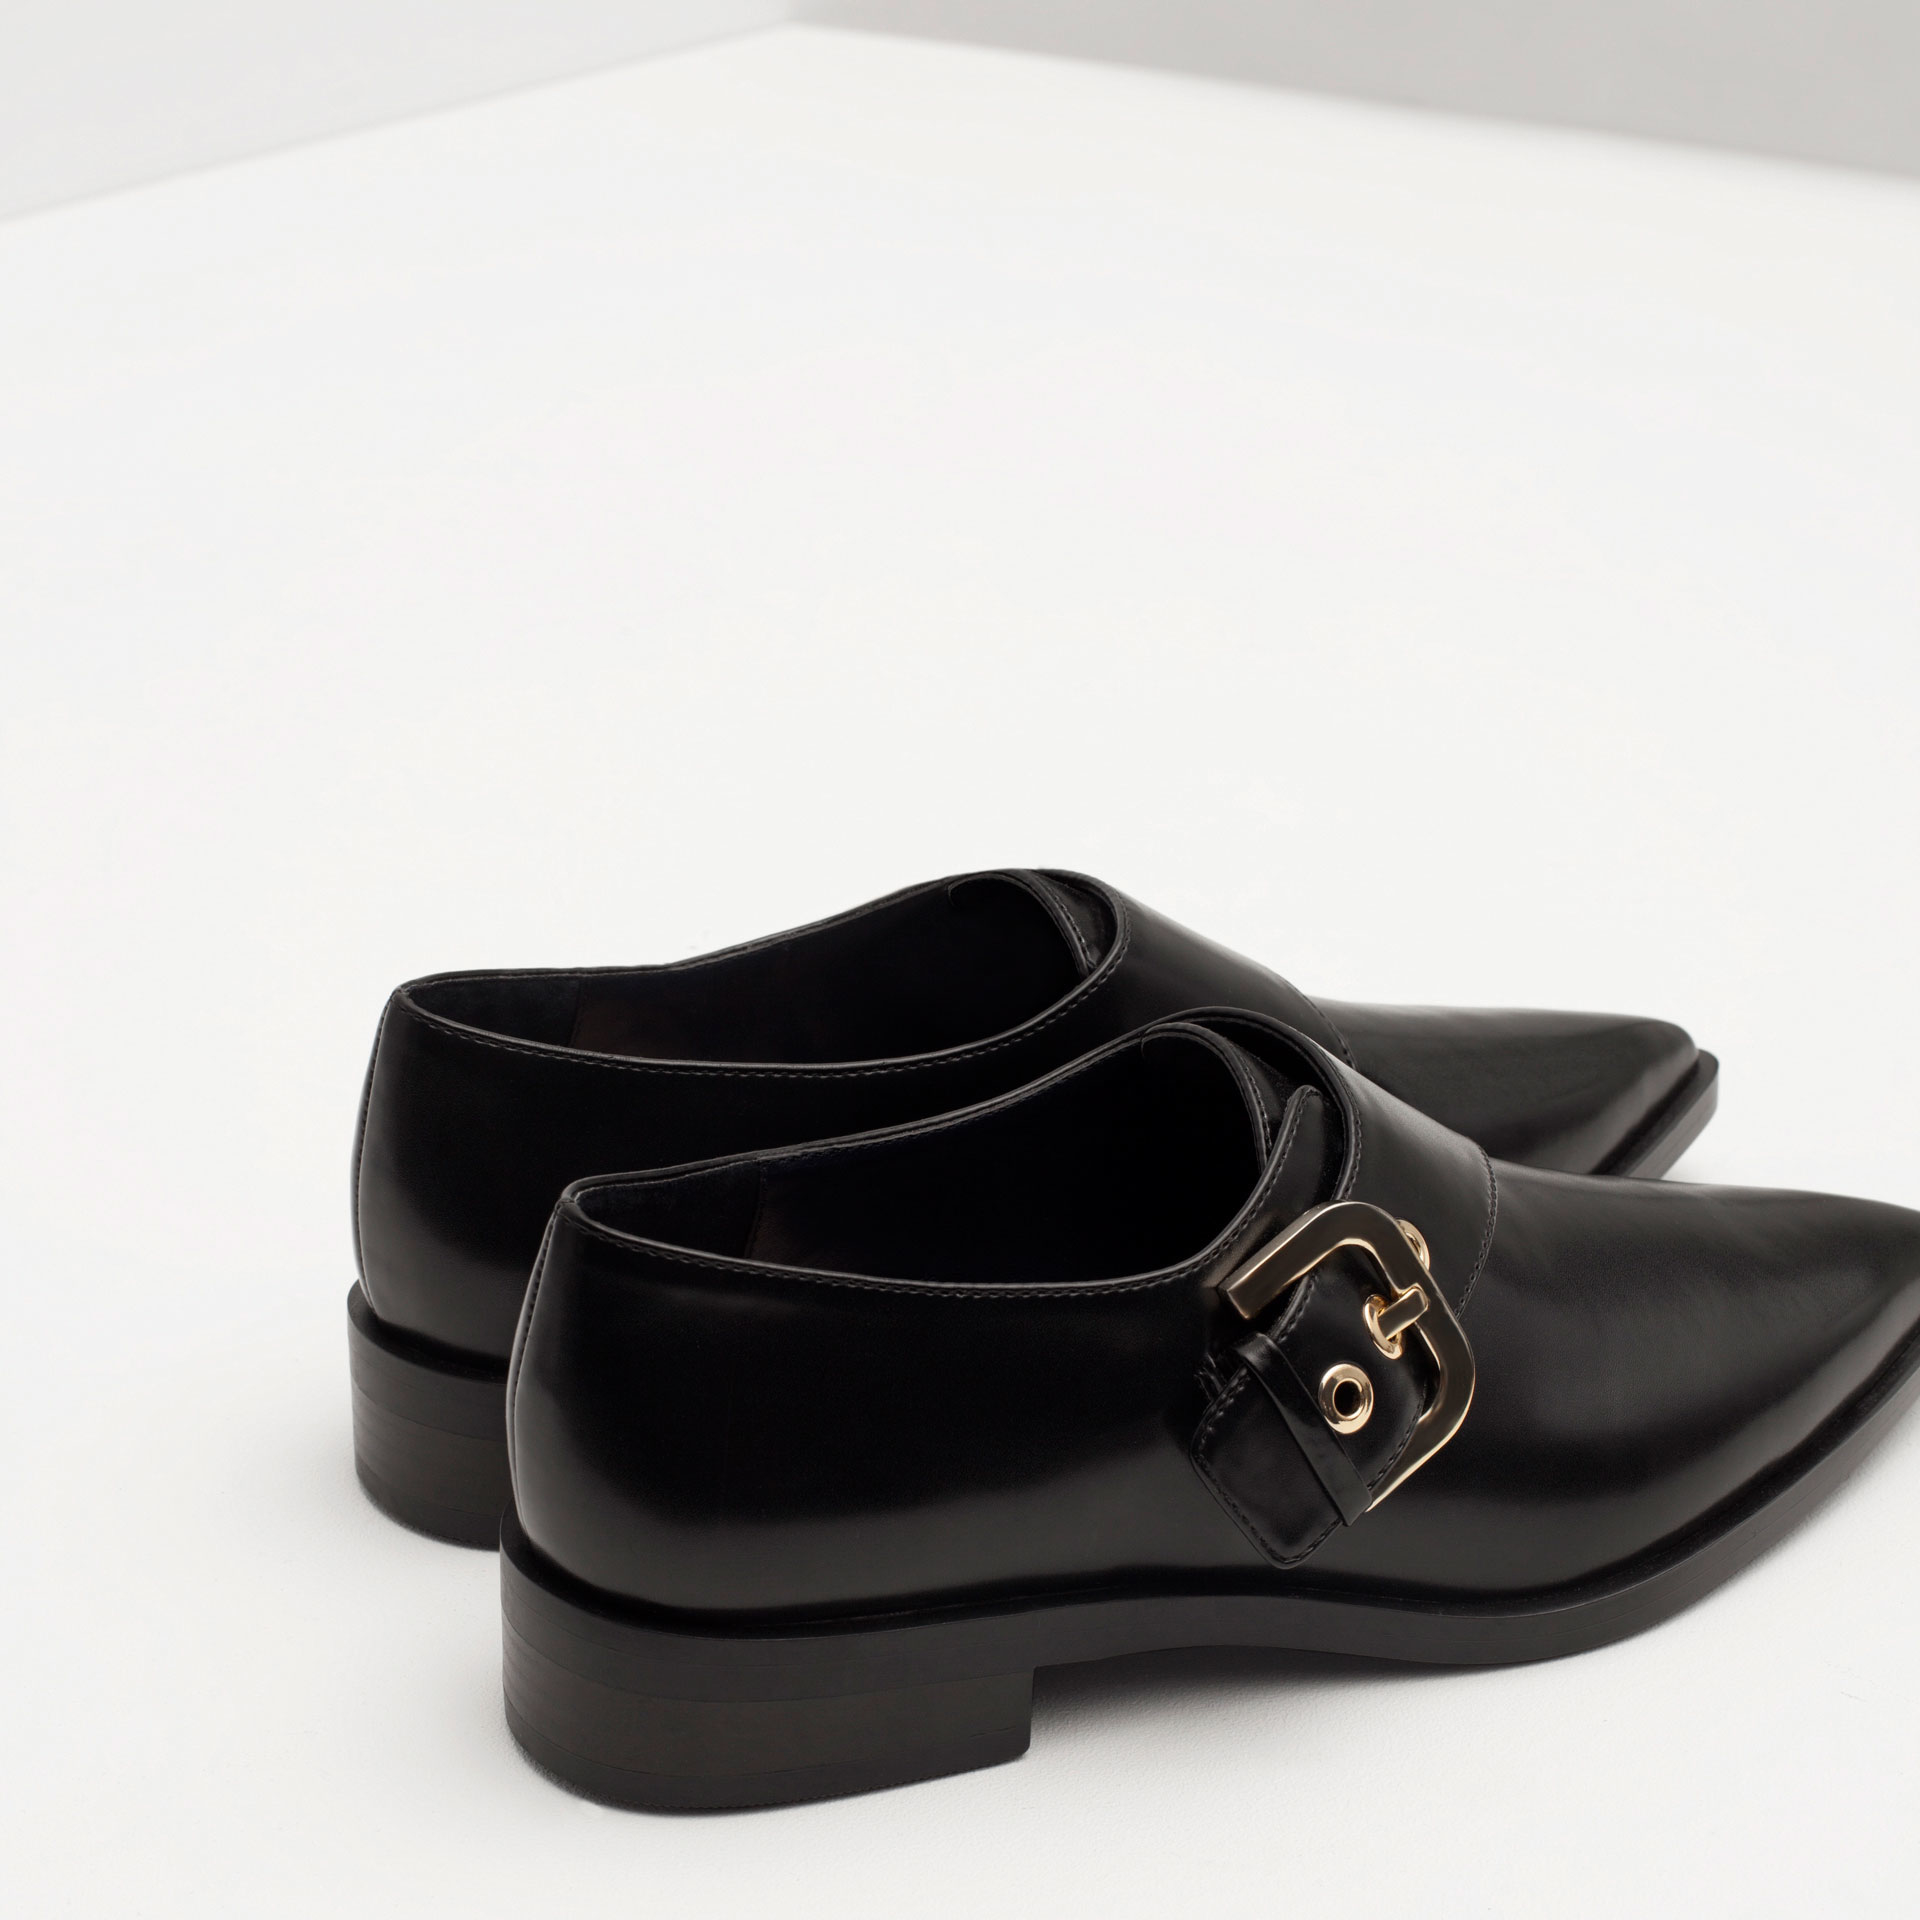 Details about Bally Black Patent Leather Flat shoes With velvet Bow & buckle Bally Black Patent Leather Flat shoes With velvet Bow & buckle Email to friends Share on Facebook - opens in a new window or tab Share on Twitter - opens in a new window or tab Share on Pinterest - .